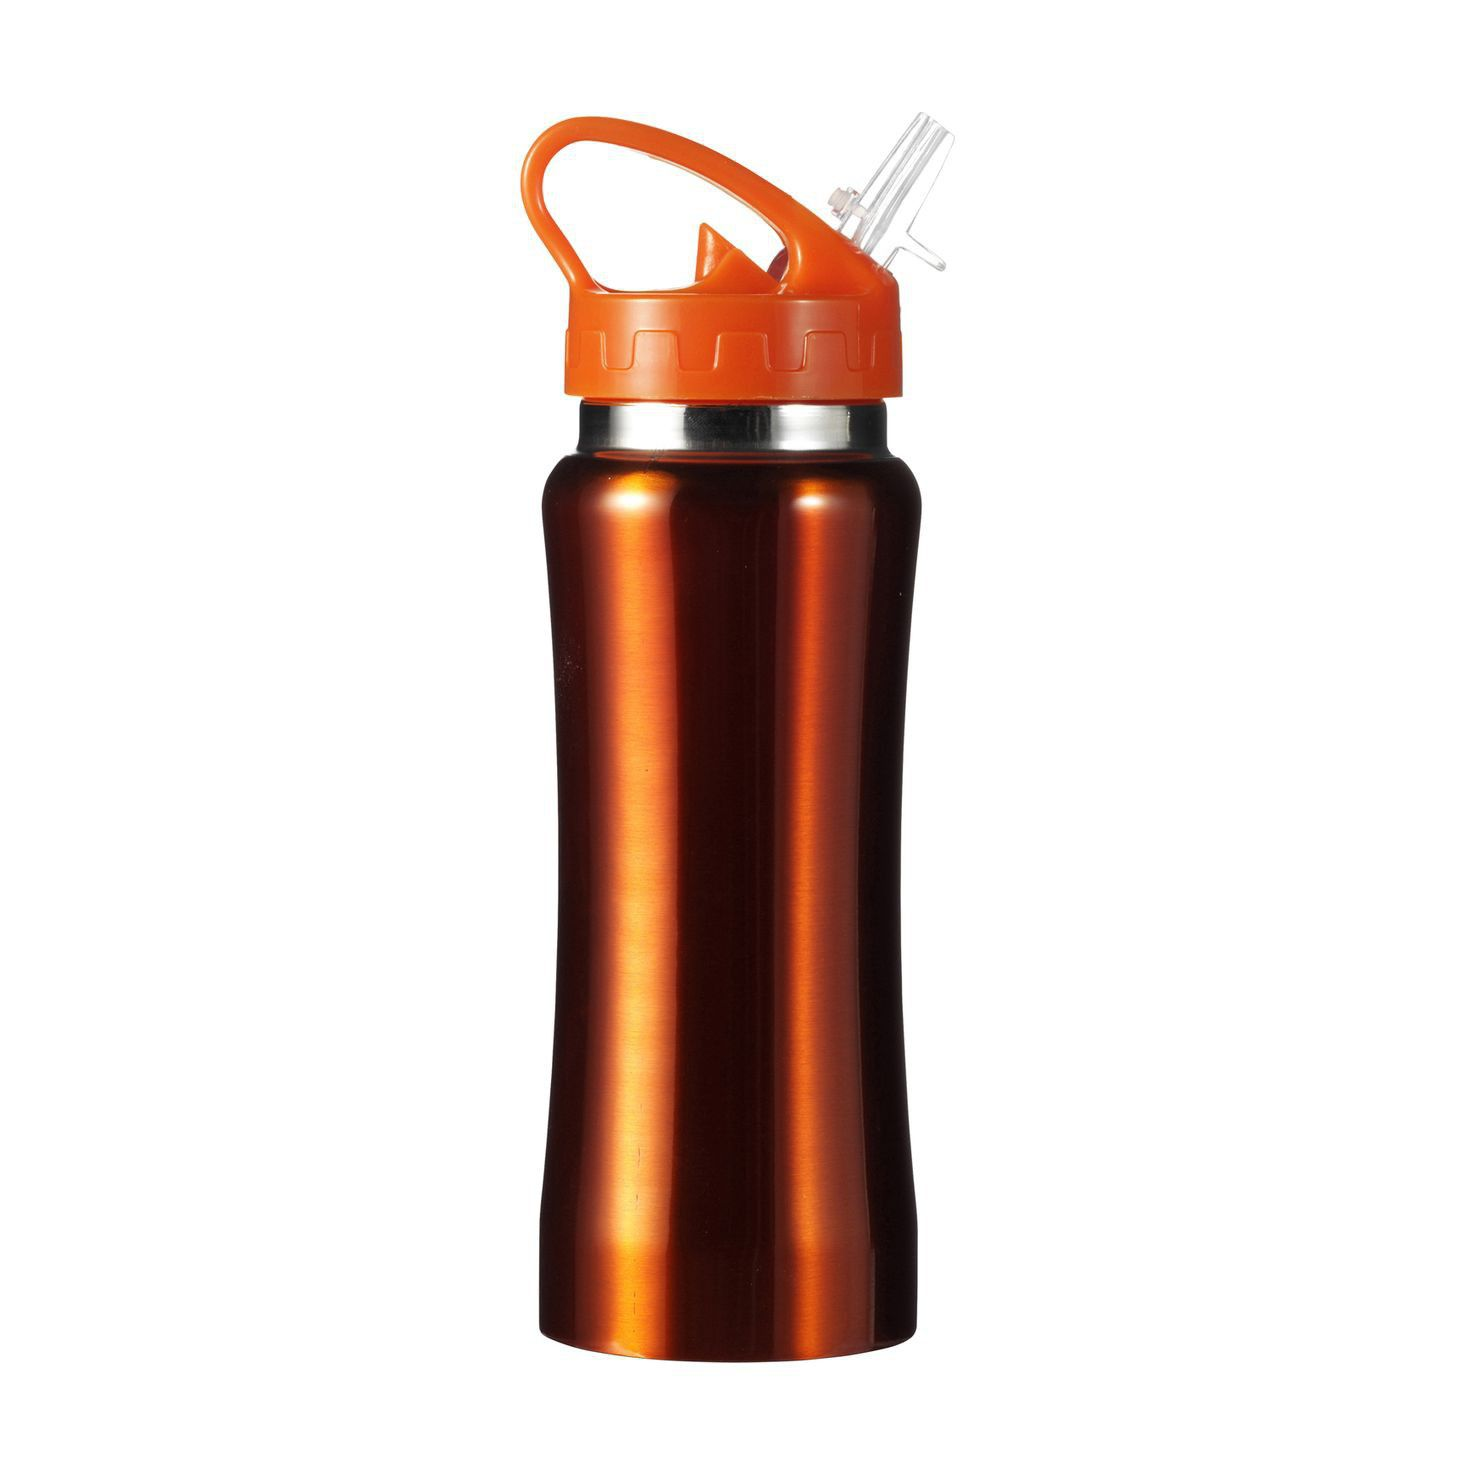 Oranje RVS drinkfles | 600 ml